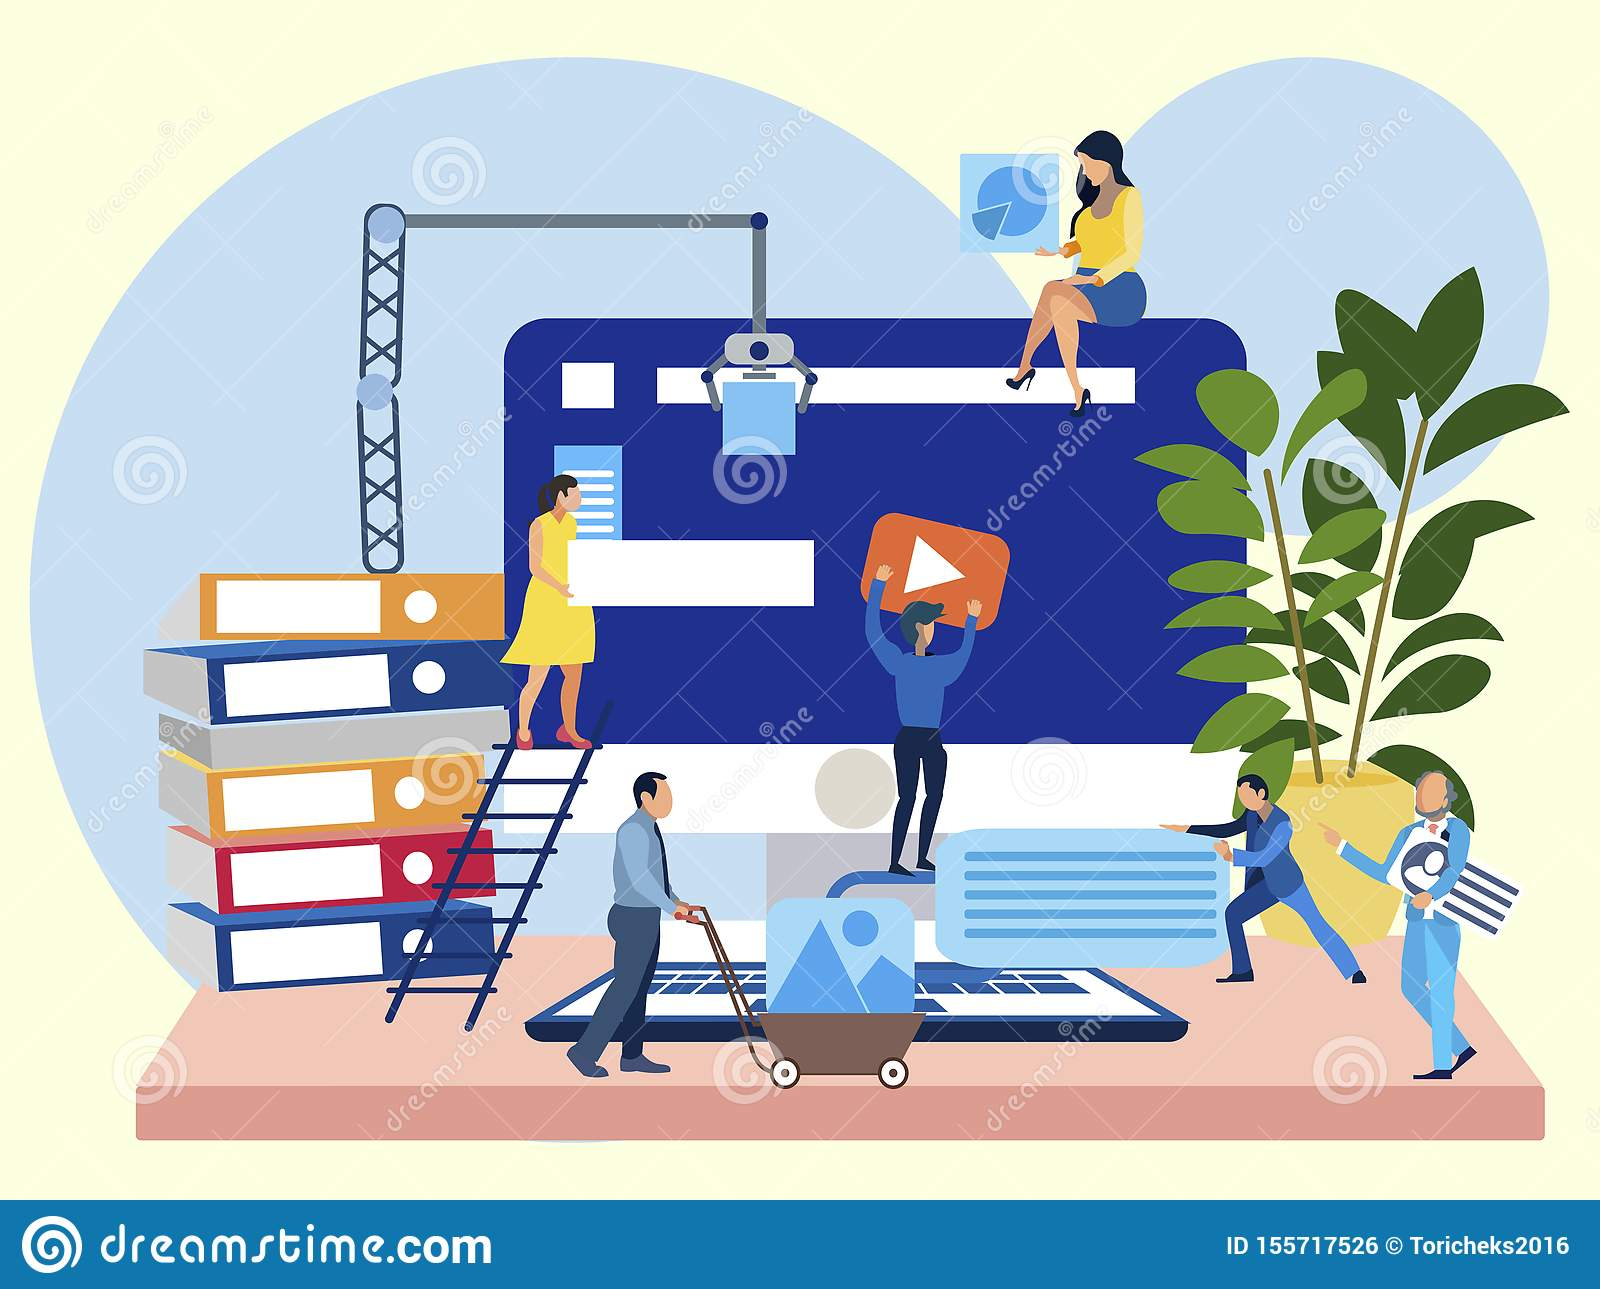 Work on the site, office employees are working on the project. In minimalist style Cartoon flat vector